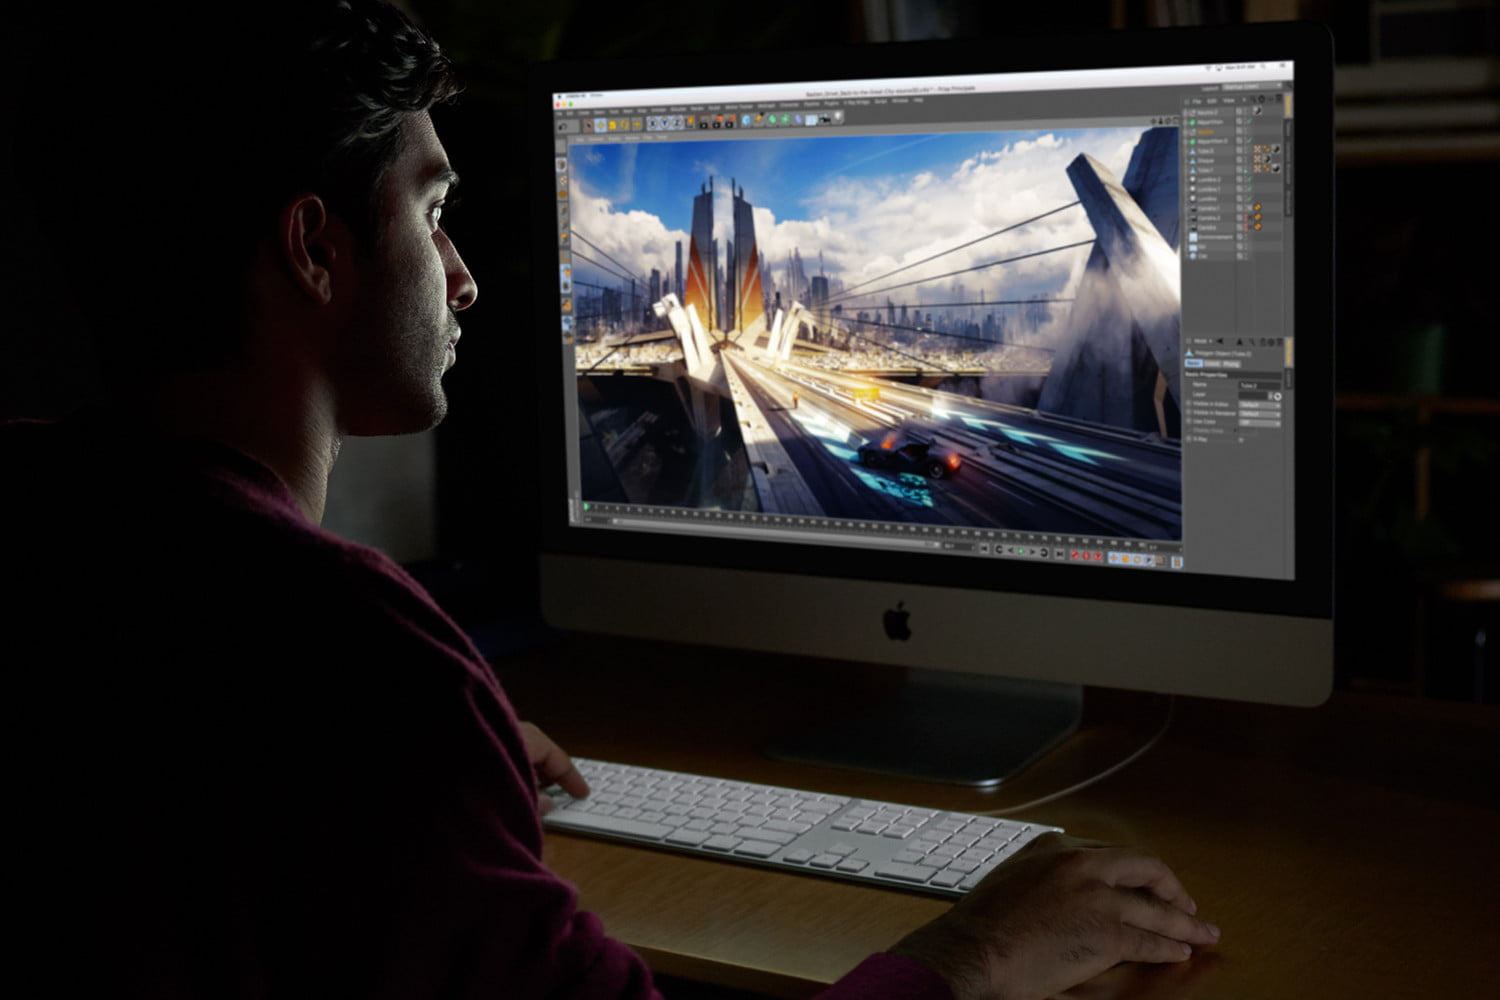 New Imac 2020.Imac Pro 2 News Rumors Features Performance And Release